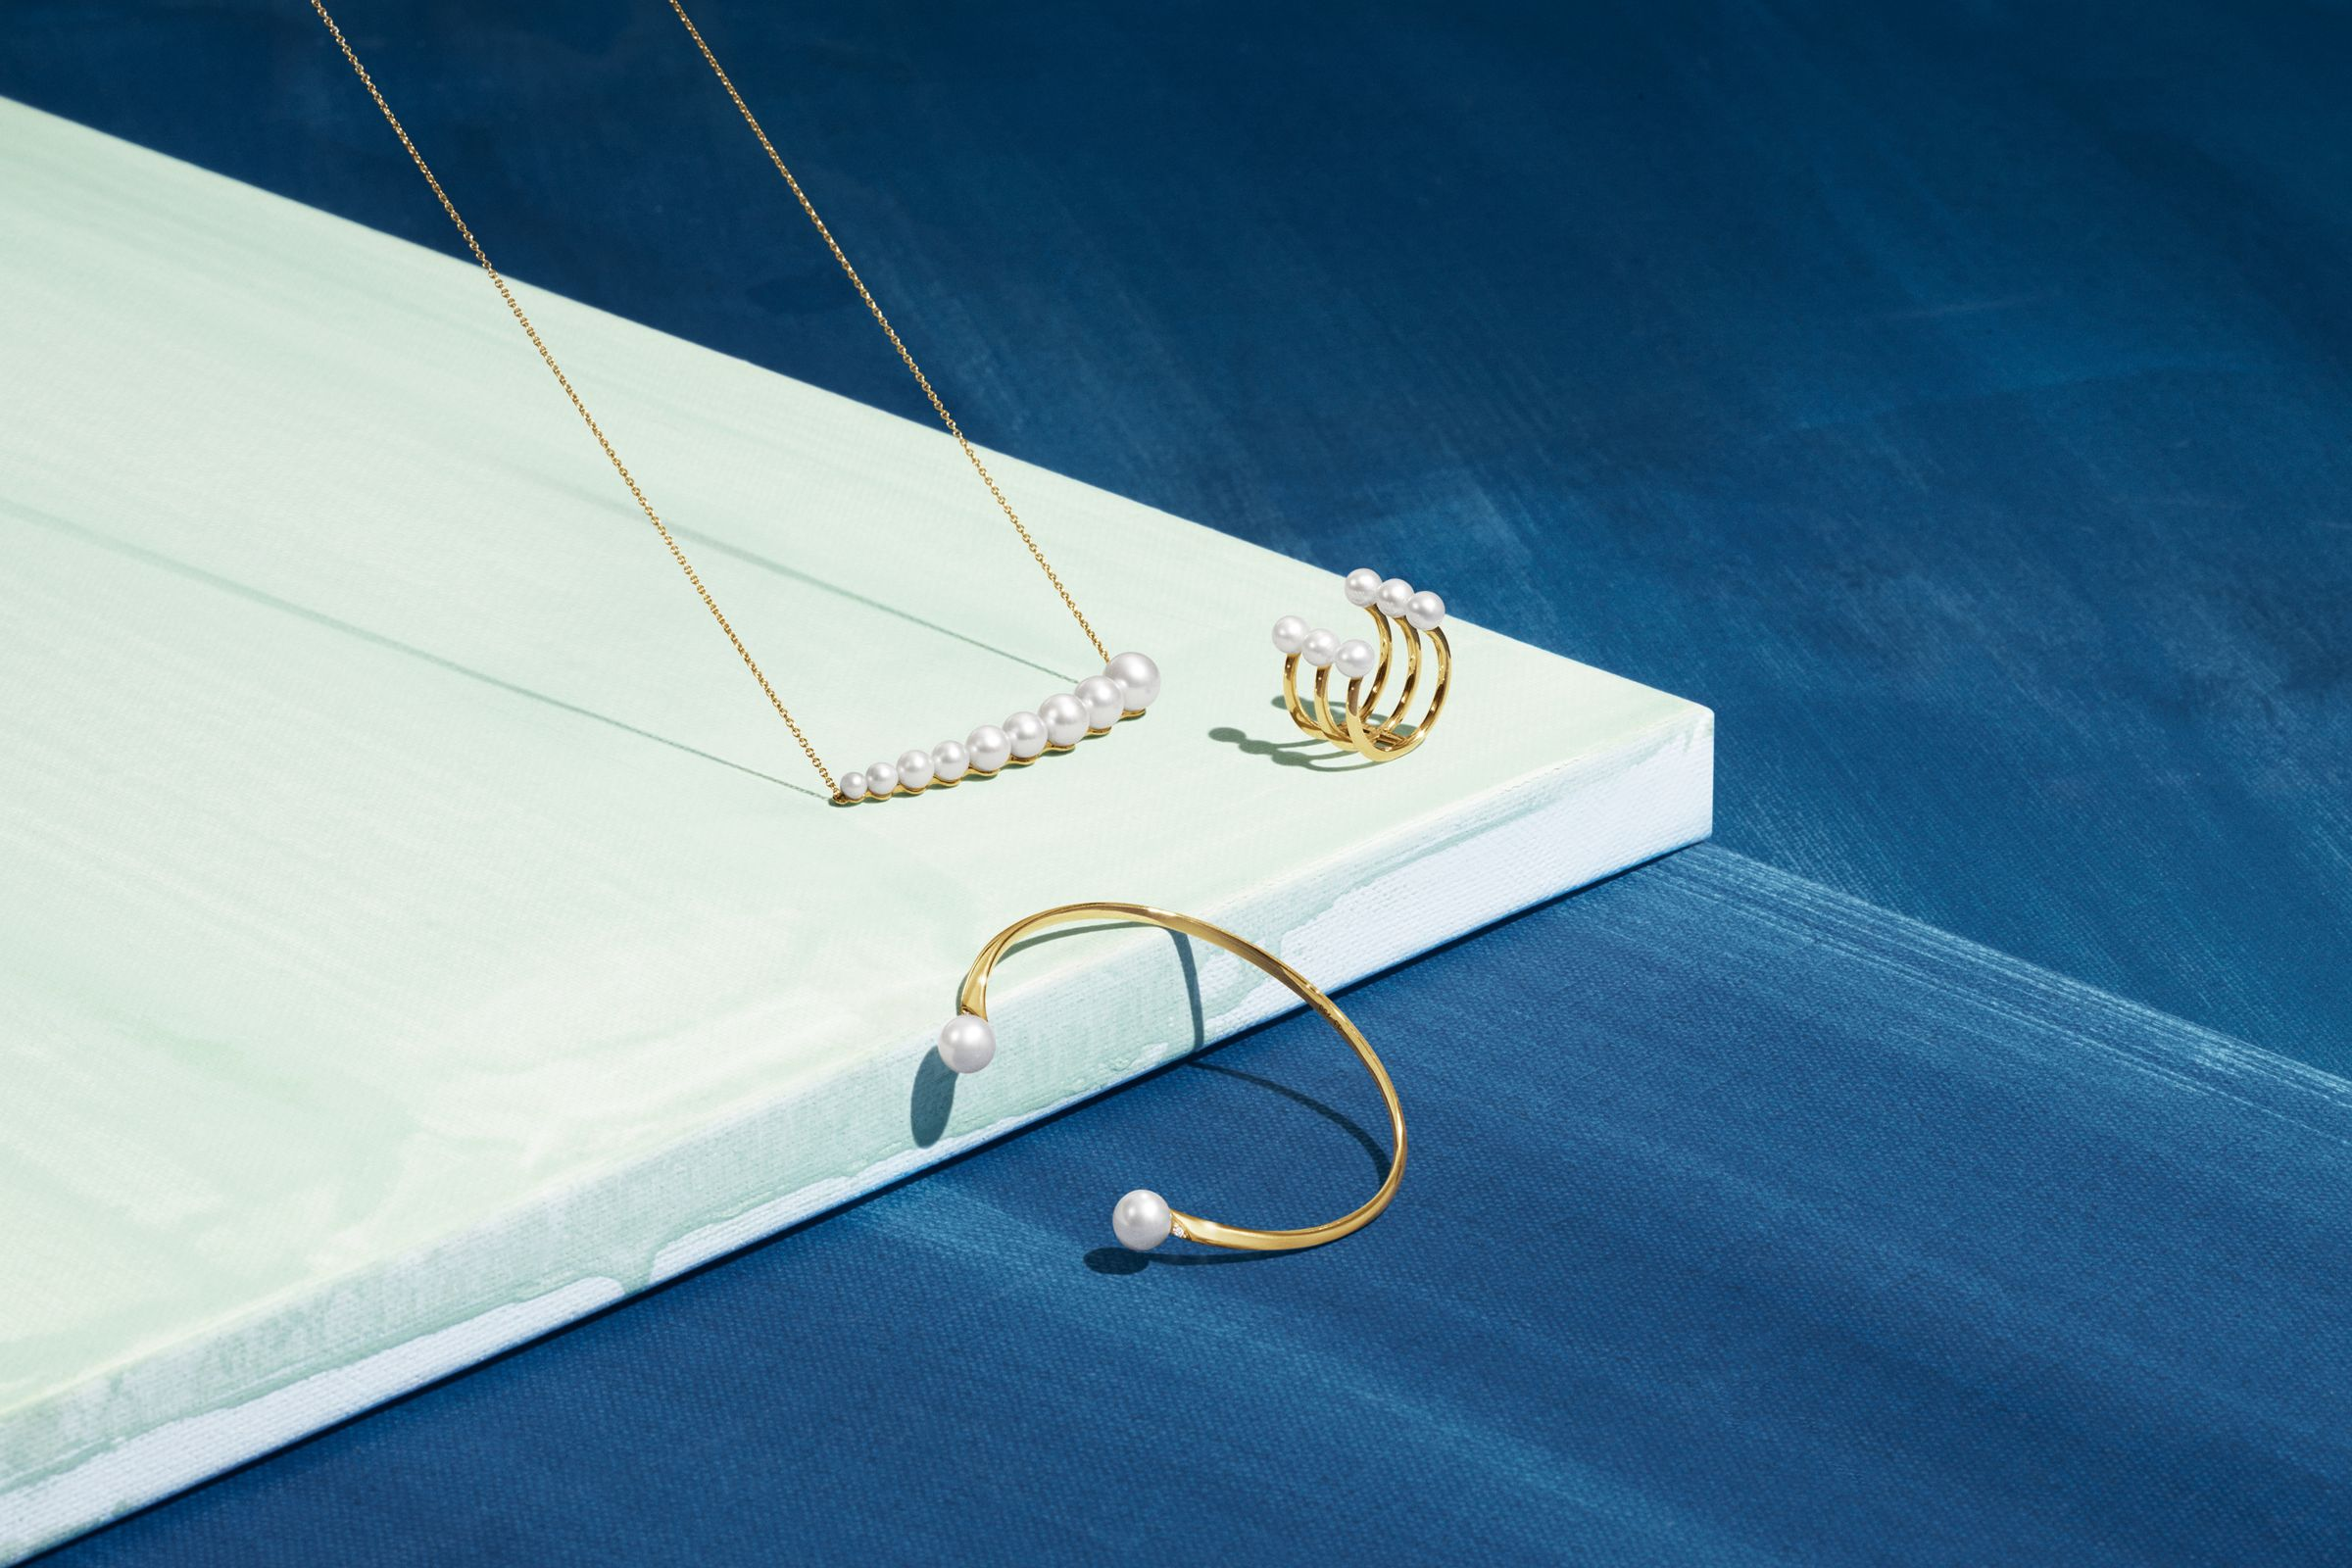 Georg Jensen still life jewelry photography for campaign